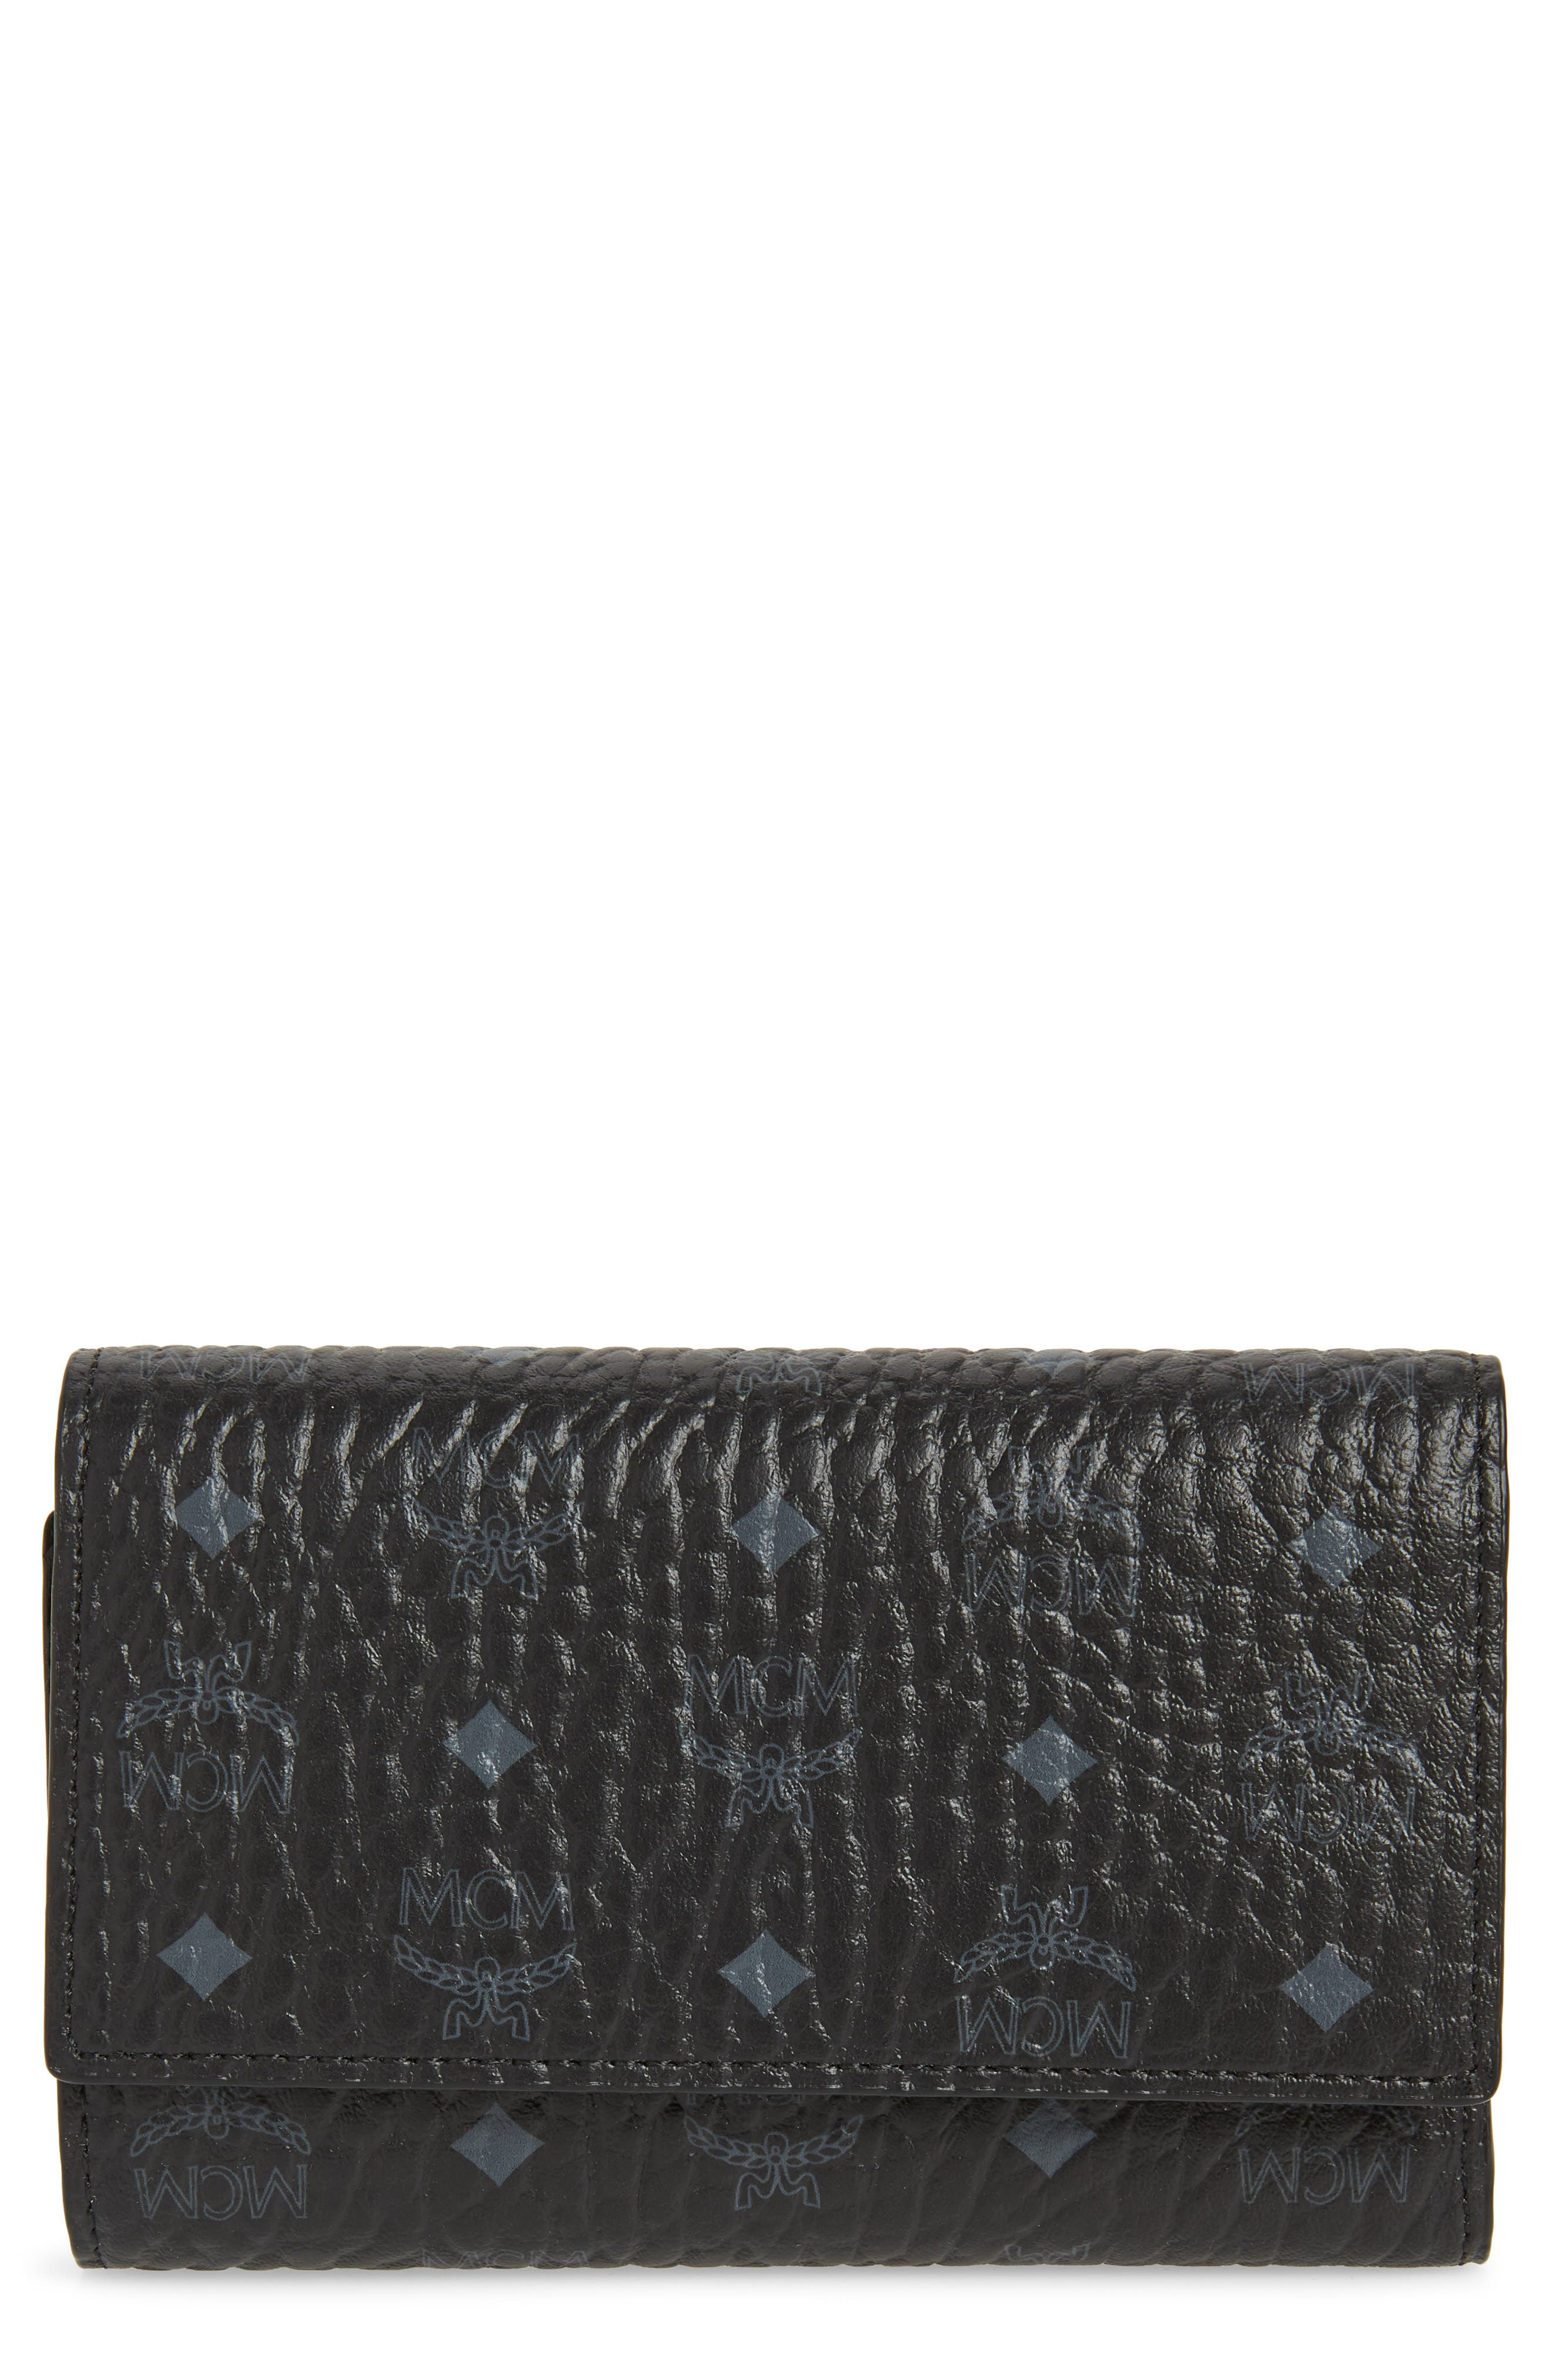 Small French Trifold Wallet,                             Main thumbnail 1, color,                             BLACK